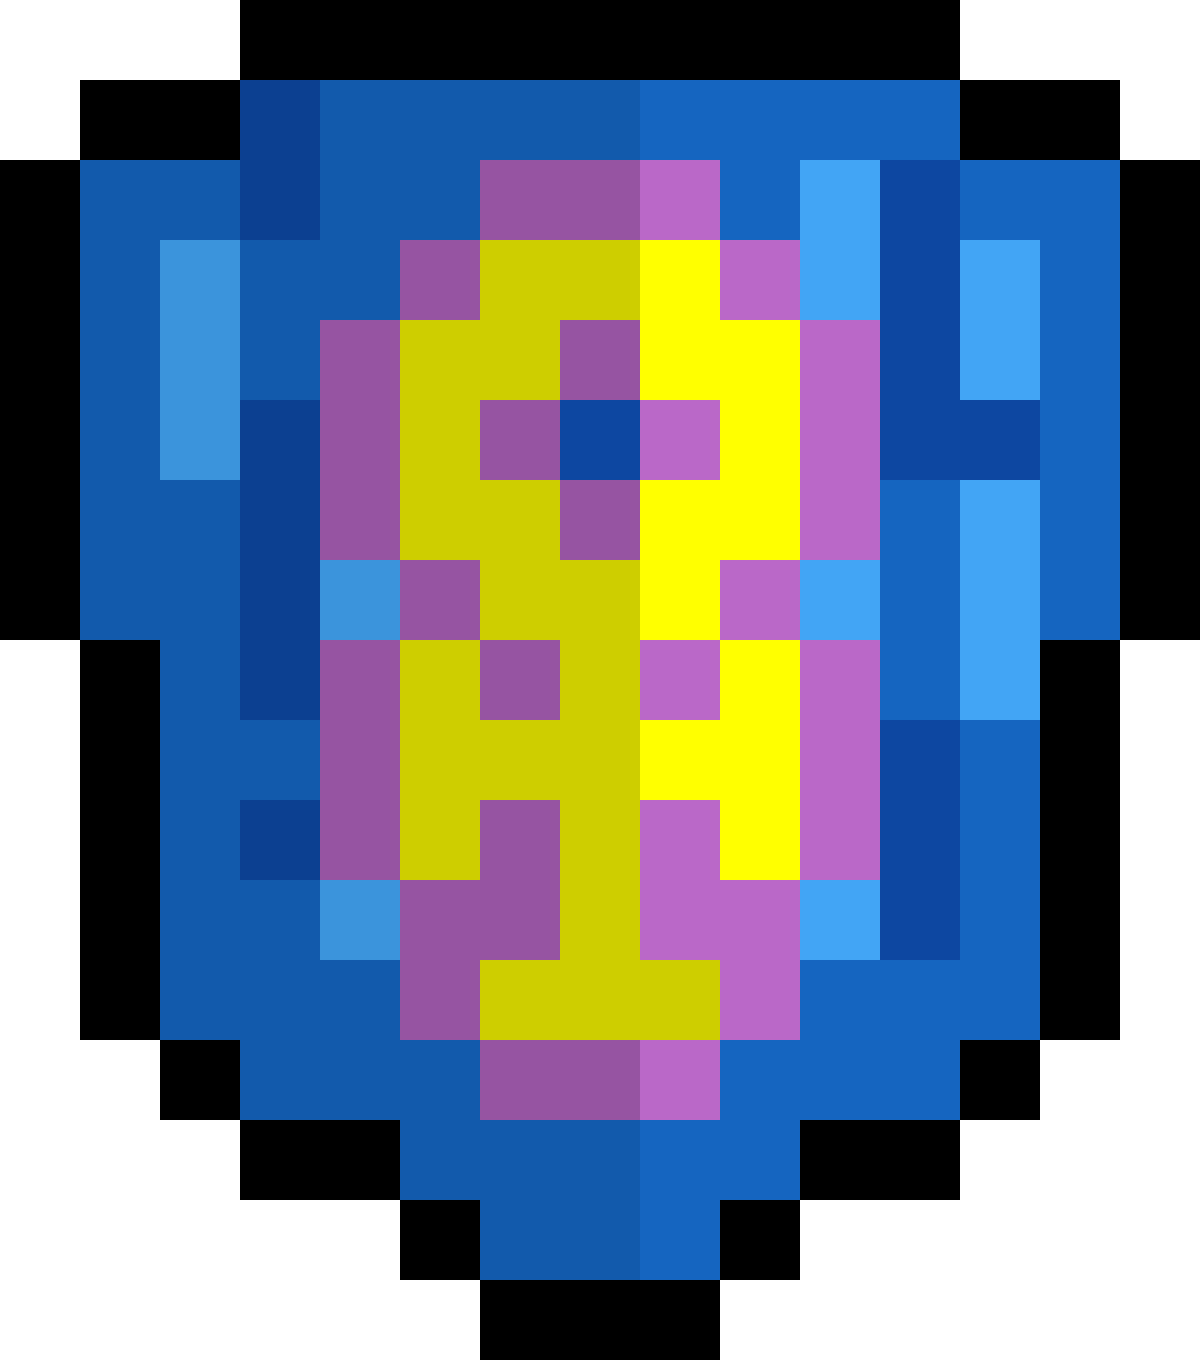 Pixilart Ankh Shield From Terraria By Shrimpyfishron For terraria on the pc, a gamefaqs message board topic titled what pieces of the ankh shield gamefaqs. pixilart ankh shield from terraria by